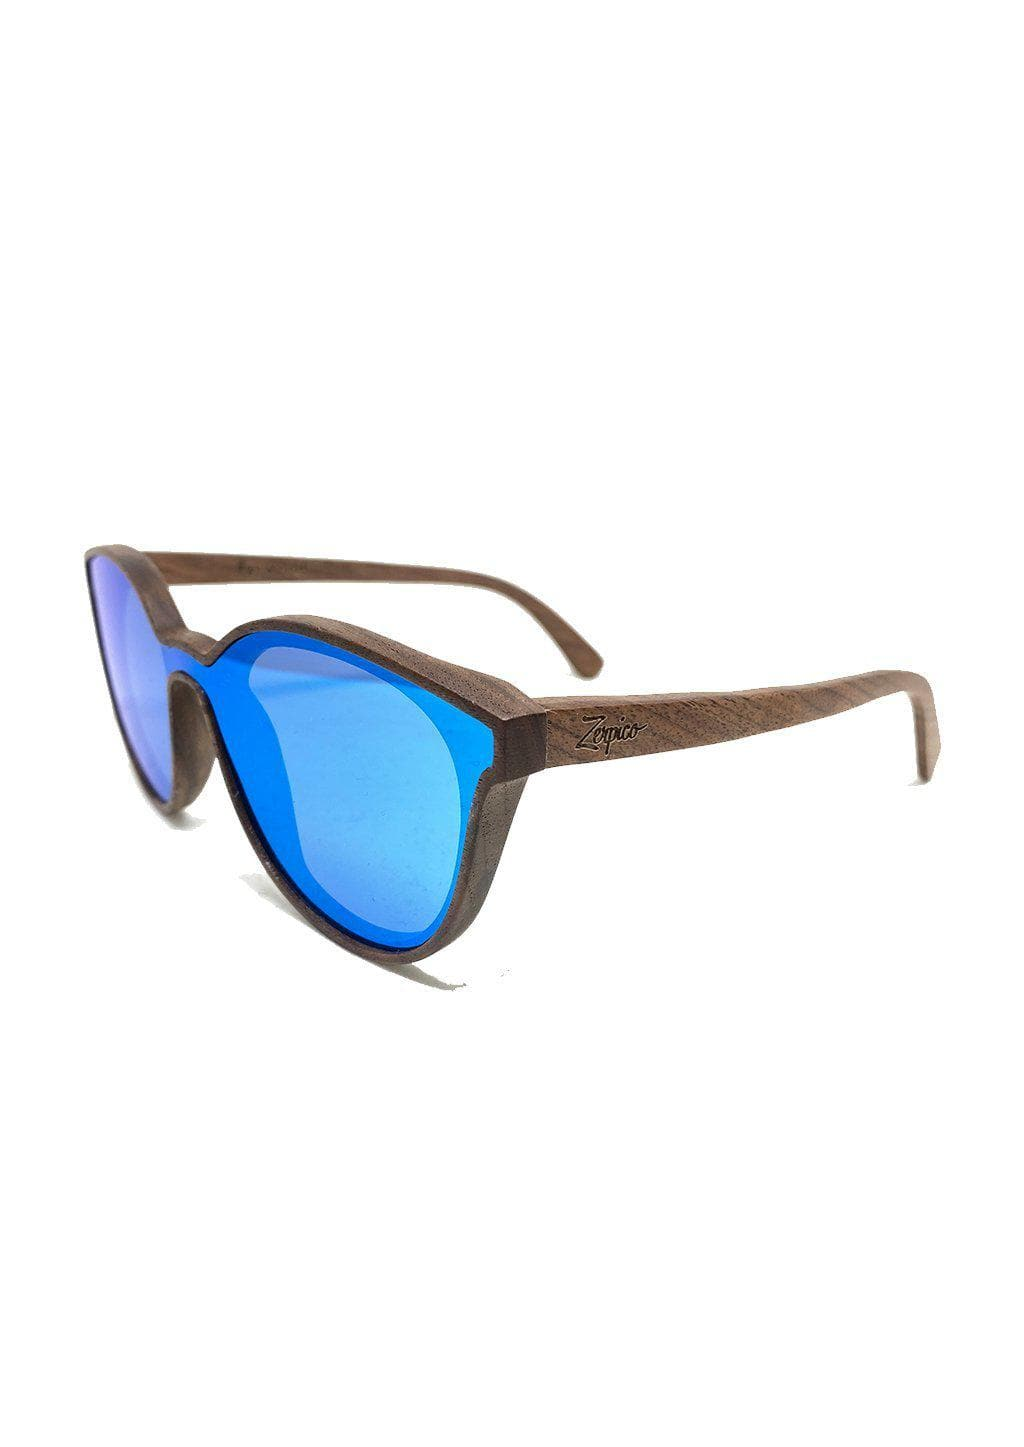 Eyewood - Savannah - All wooden sunglasses with full front blue mirror lenses.